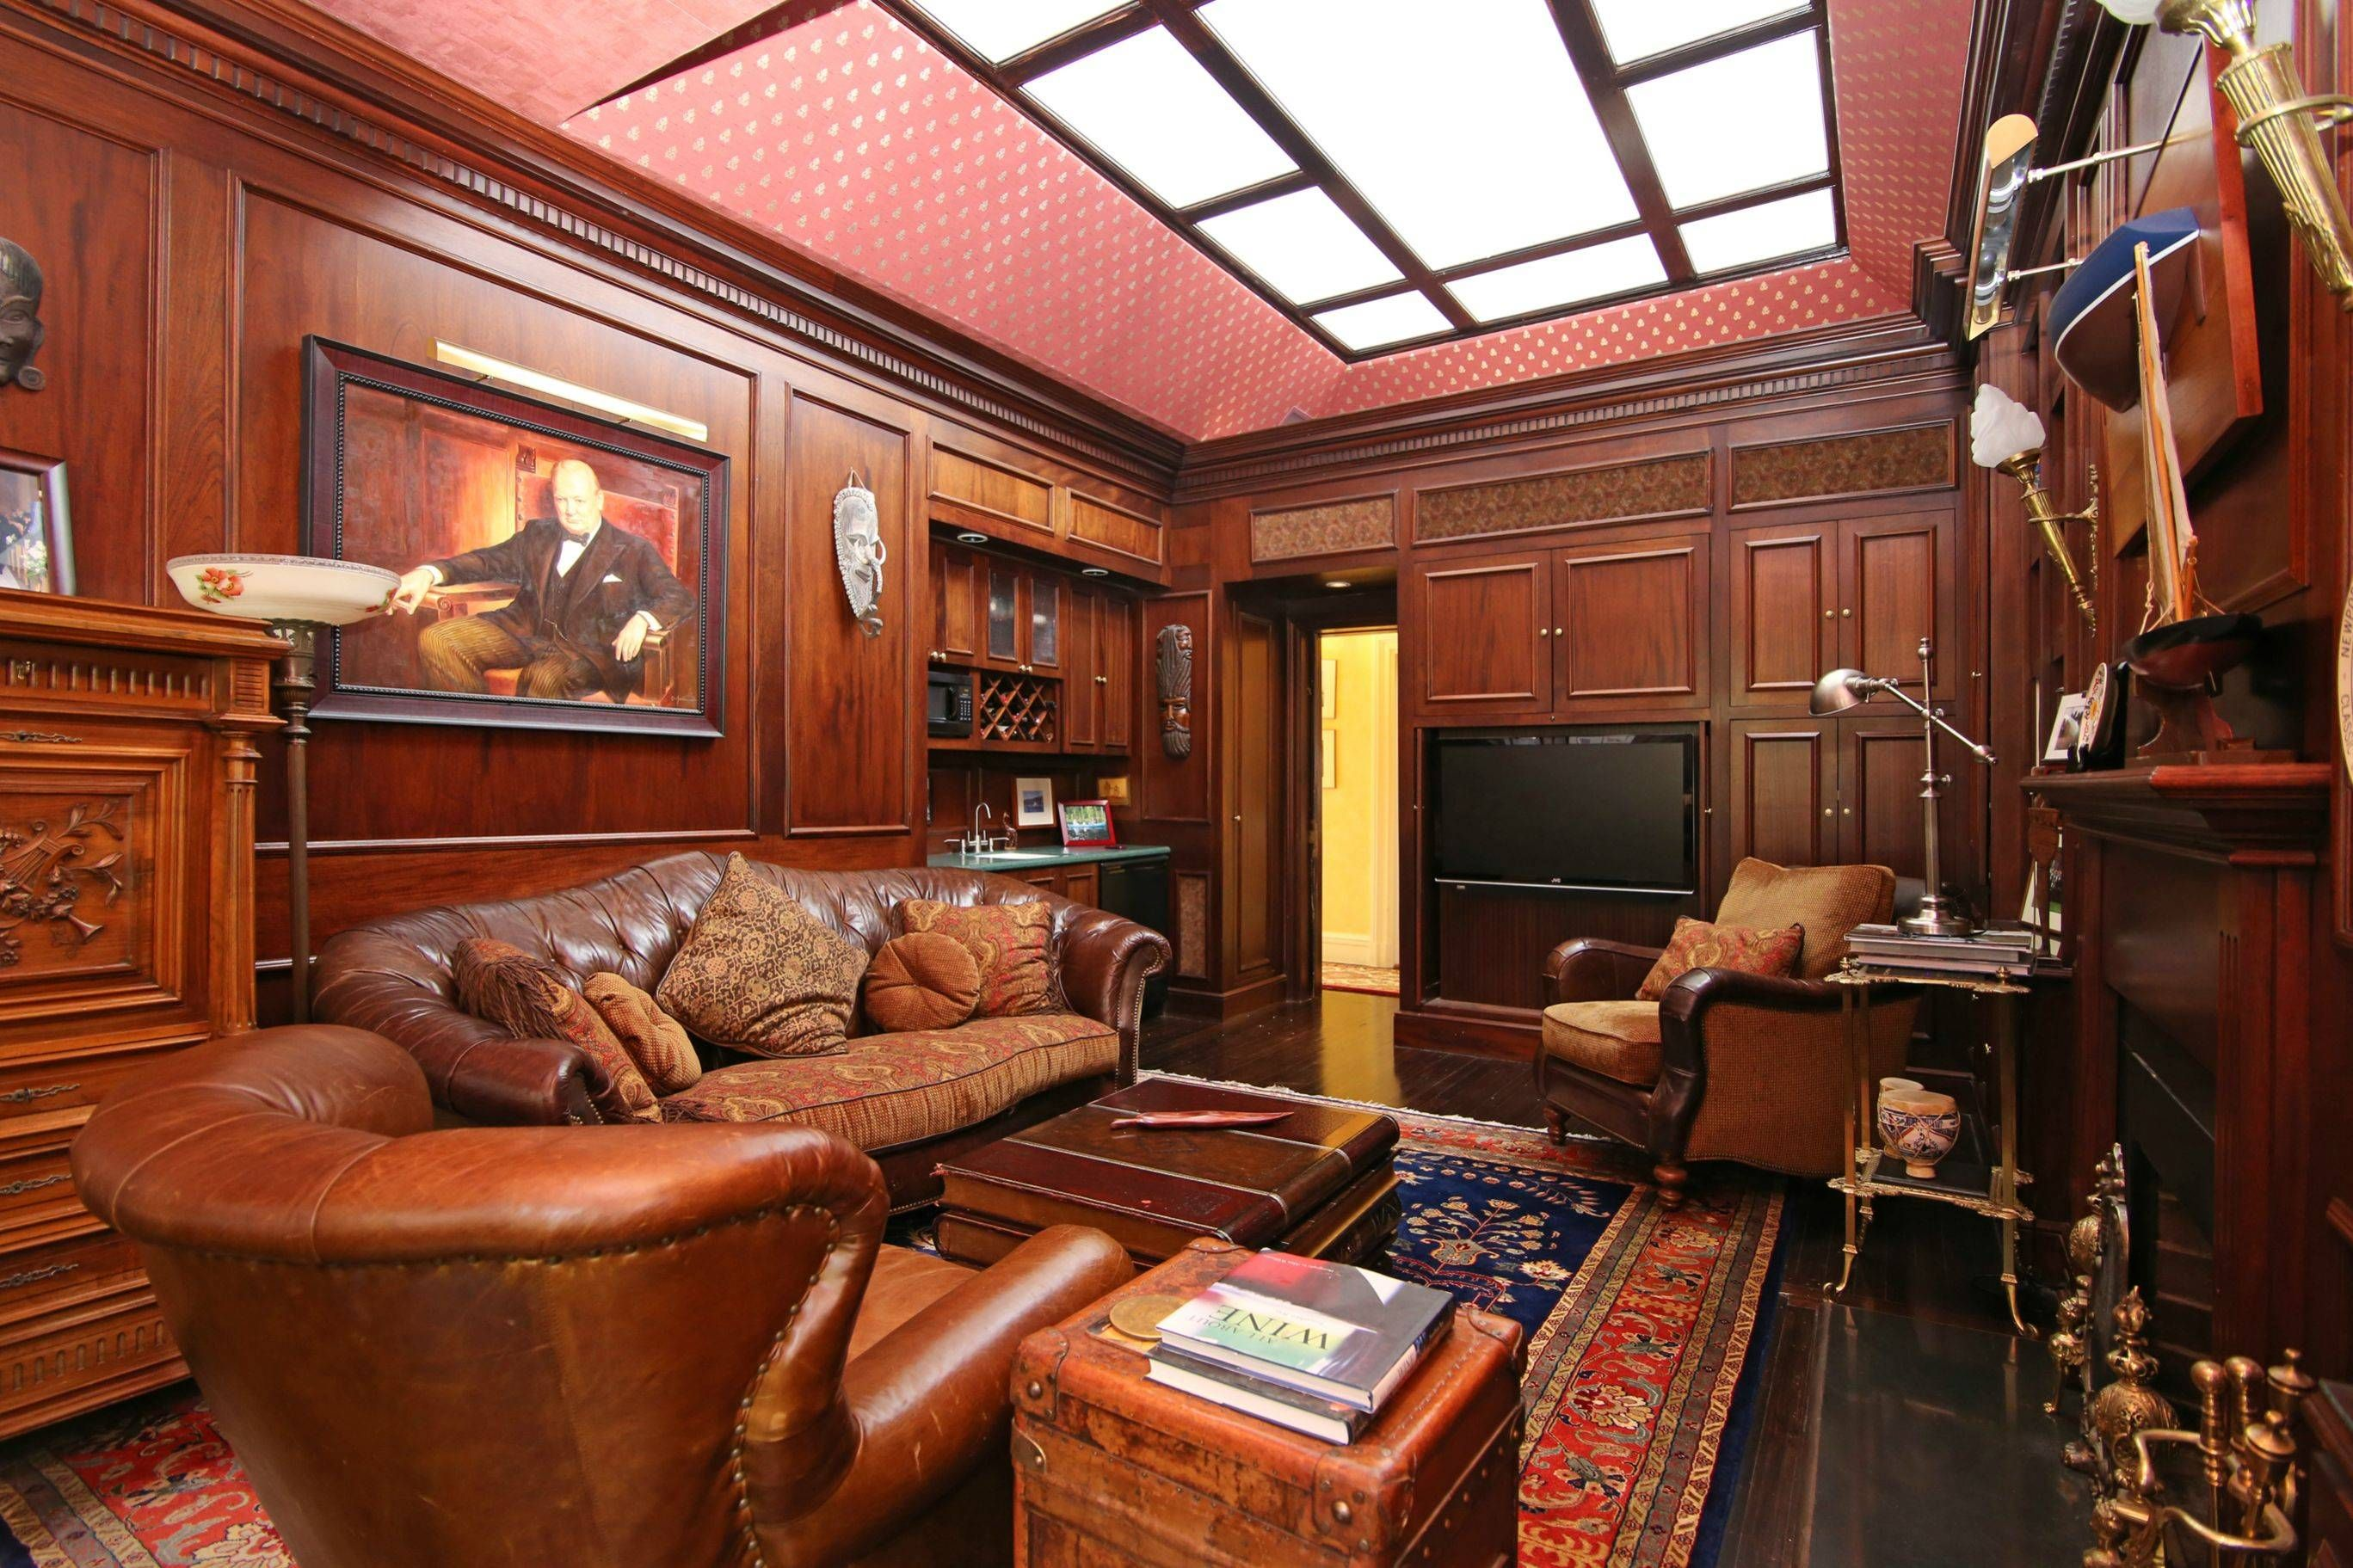 Classic Man Cave Pictures : Man cave furniture ideas for men manly interior designs